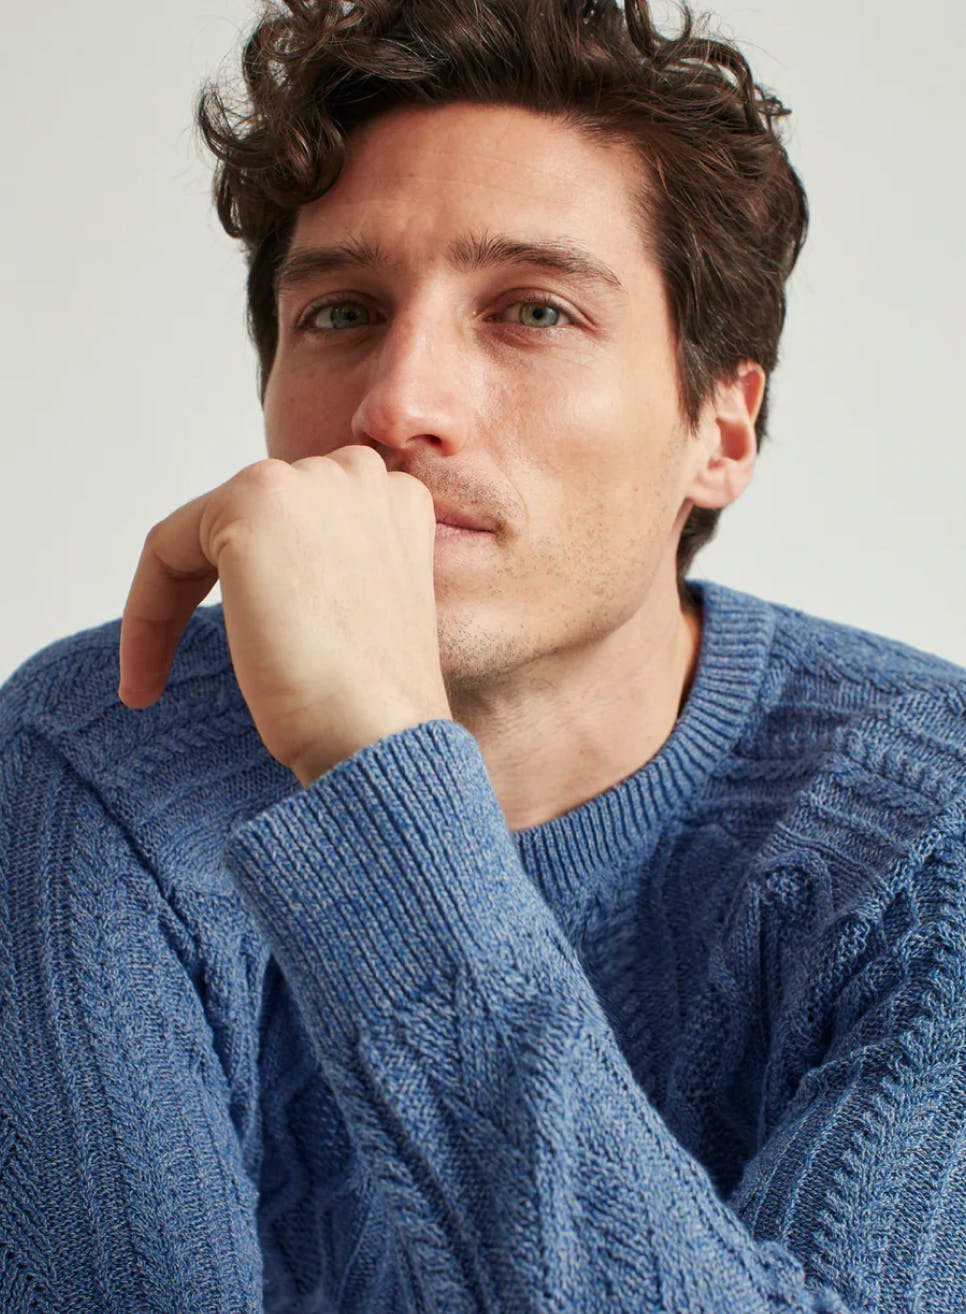 man wearing a blue sweater